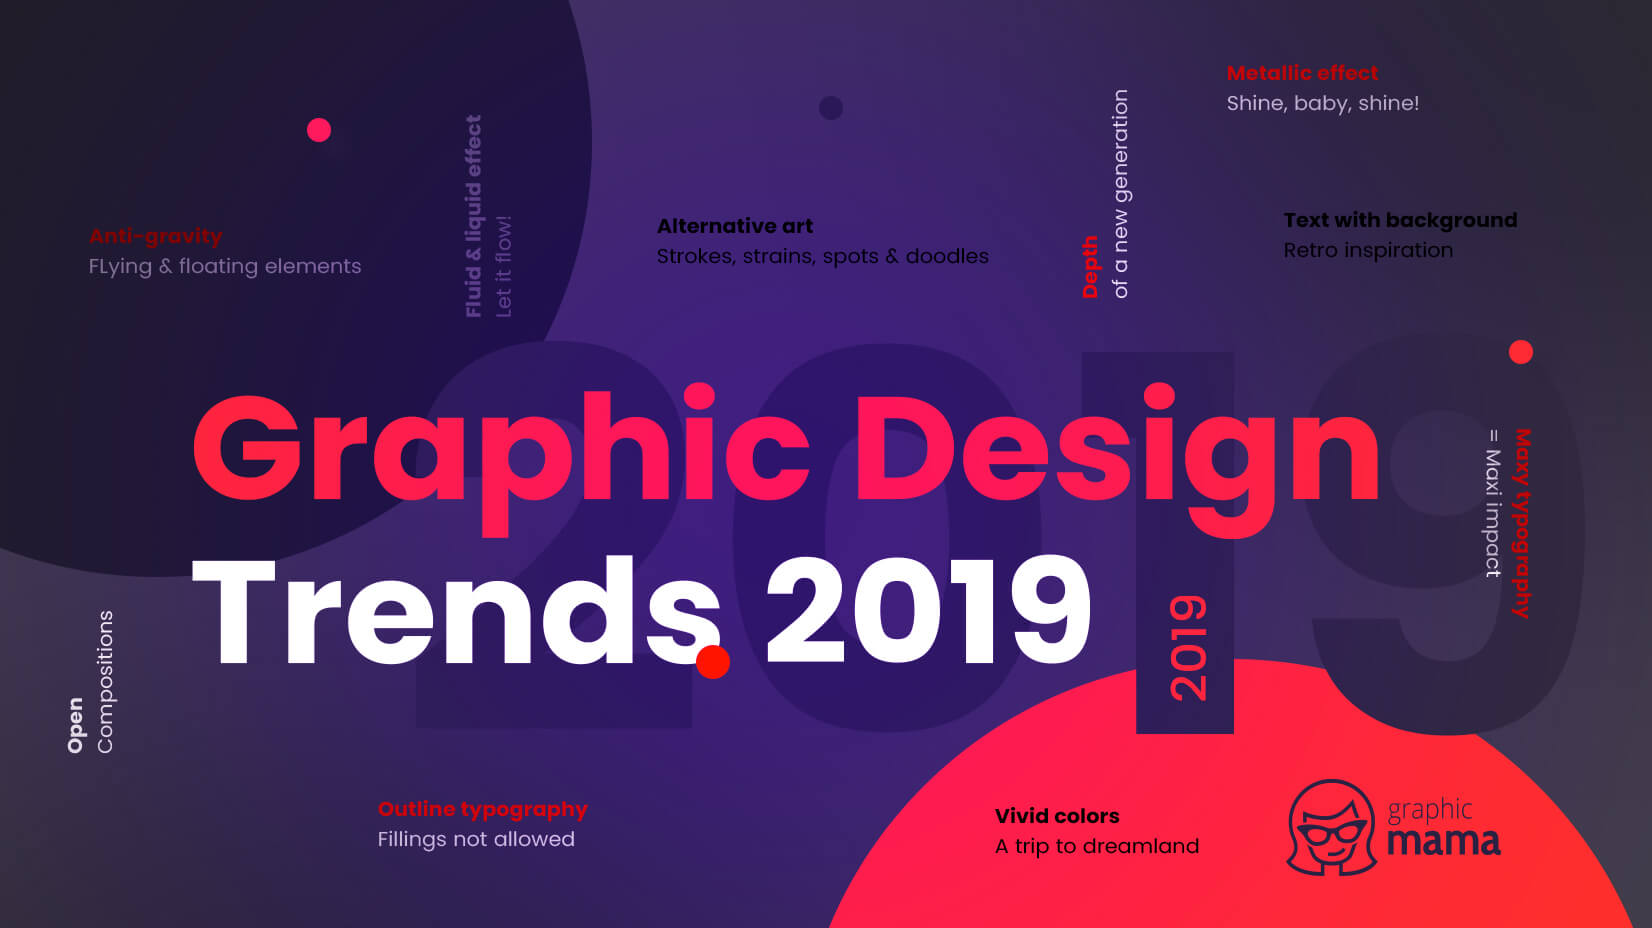 Top Graphic Design Trends 2019 Fresh Hot Bold Graphicmama